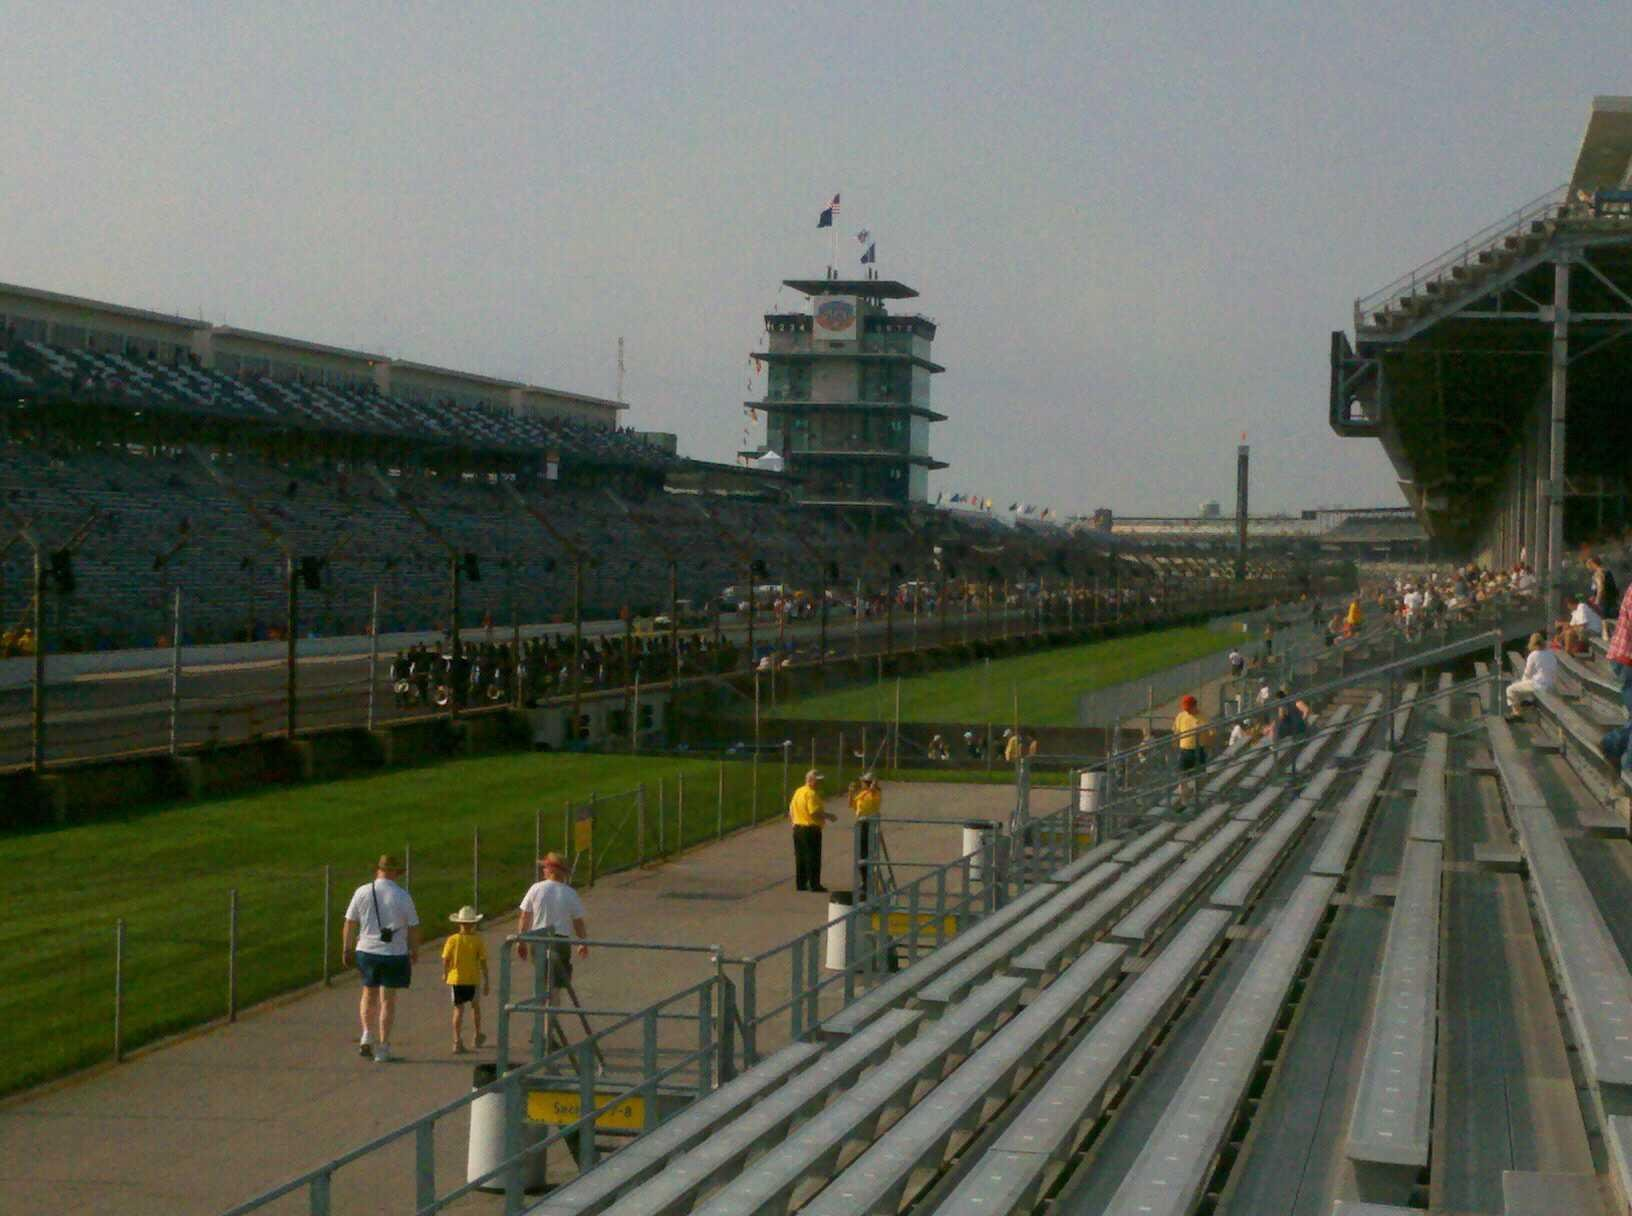 Indianapolis Motor Speedway Section Paddock 11 Row H Seat 10